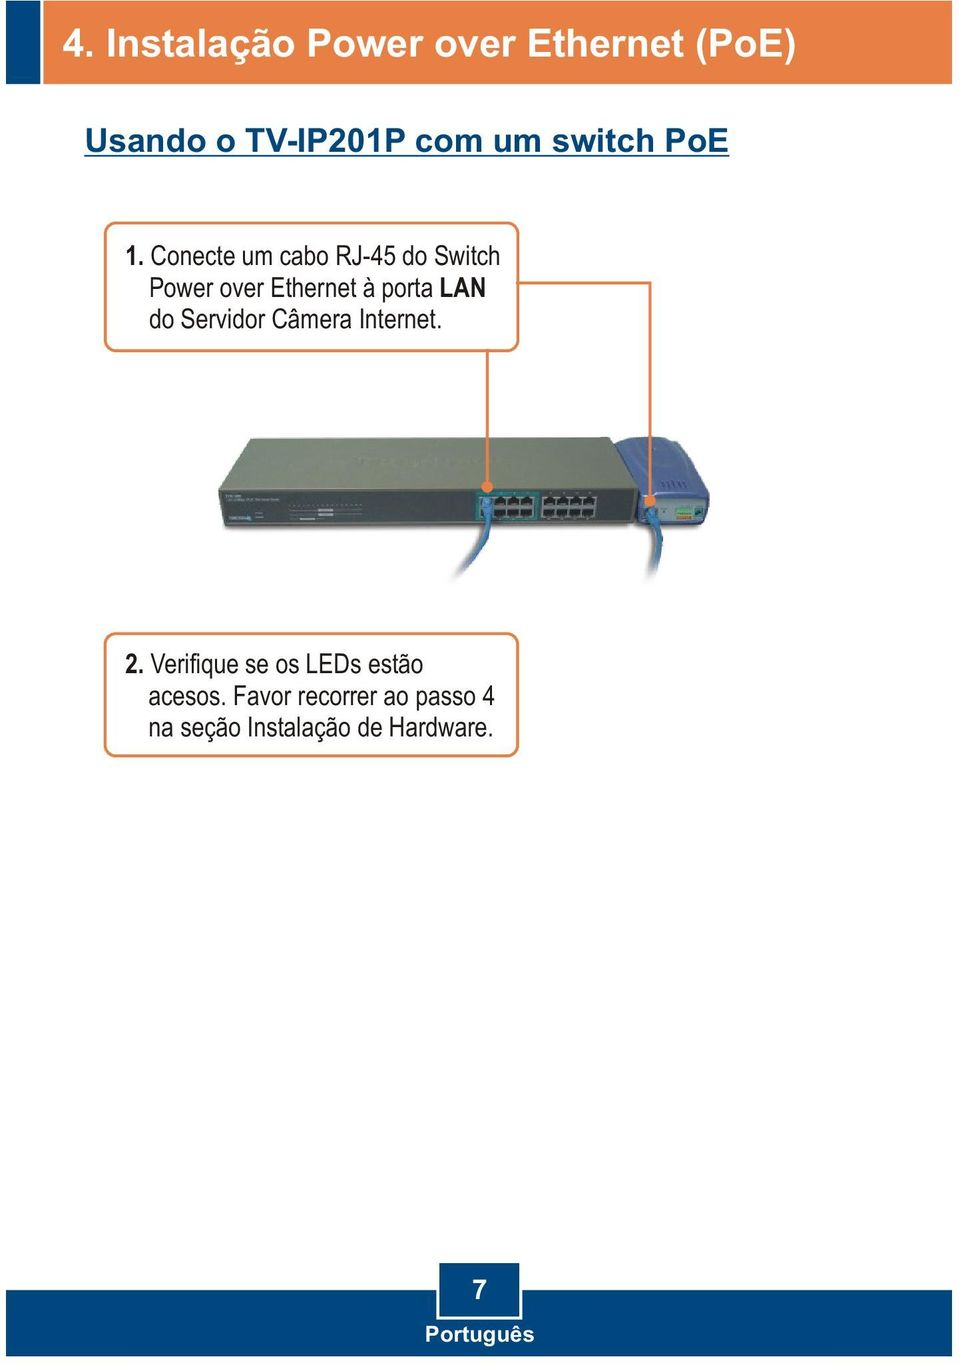 Conecte um cabo RJ-45 do Switch Power over Ethernet à porta LAN do